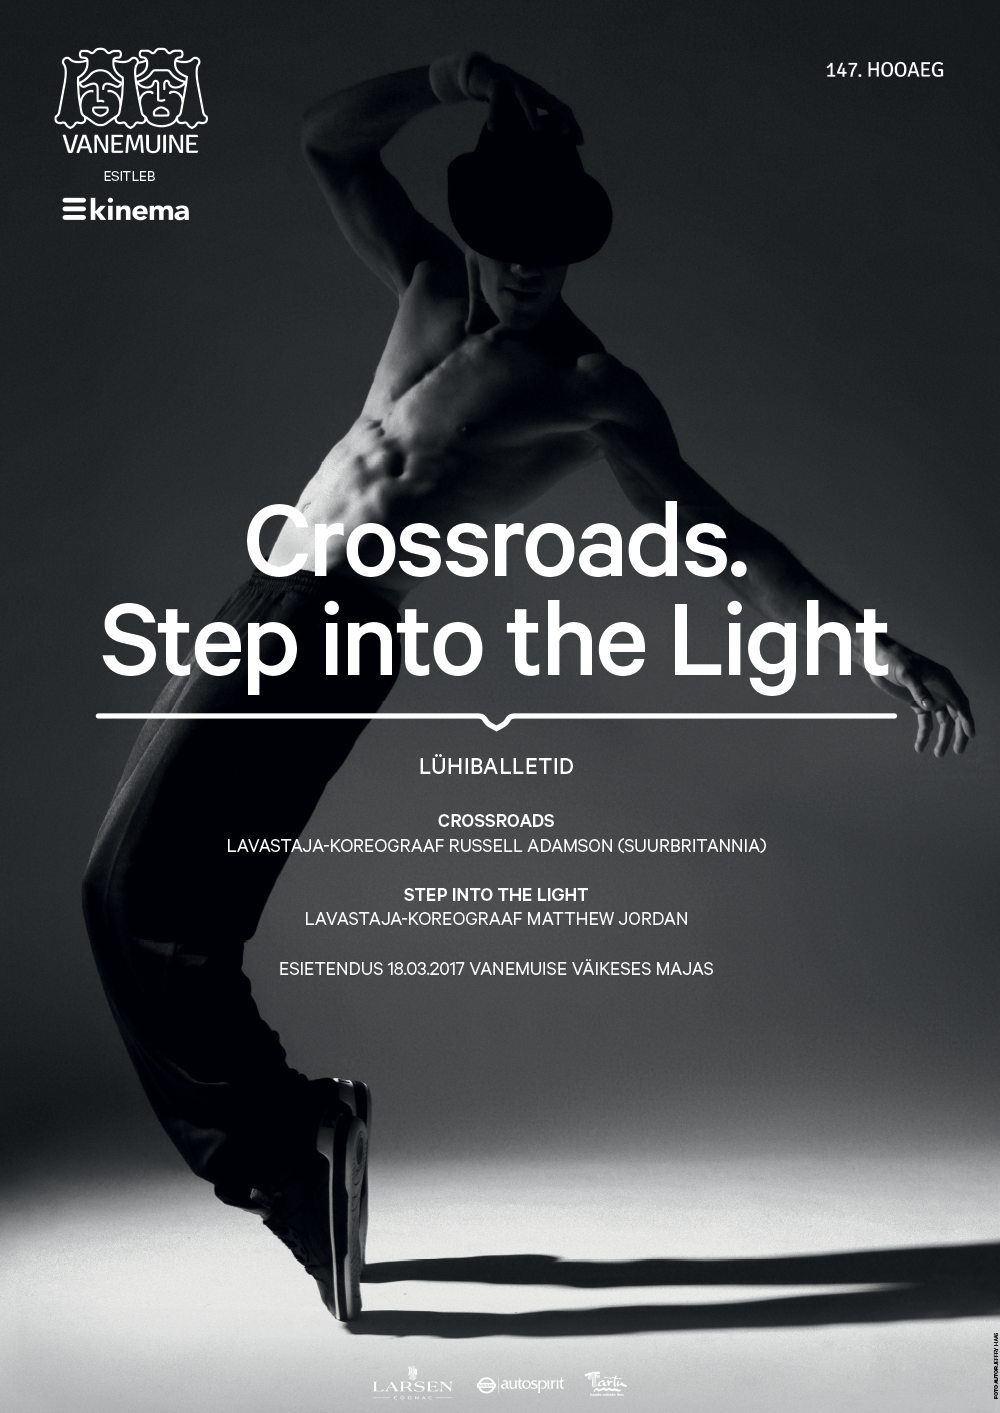 Crossroads. Step into the Light